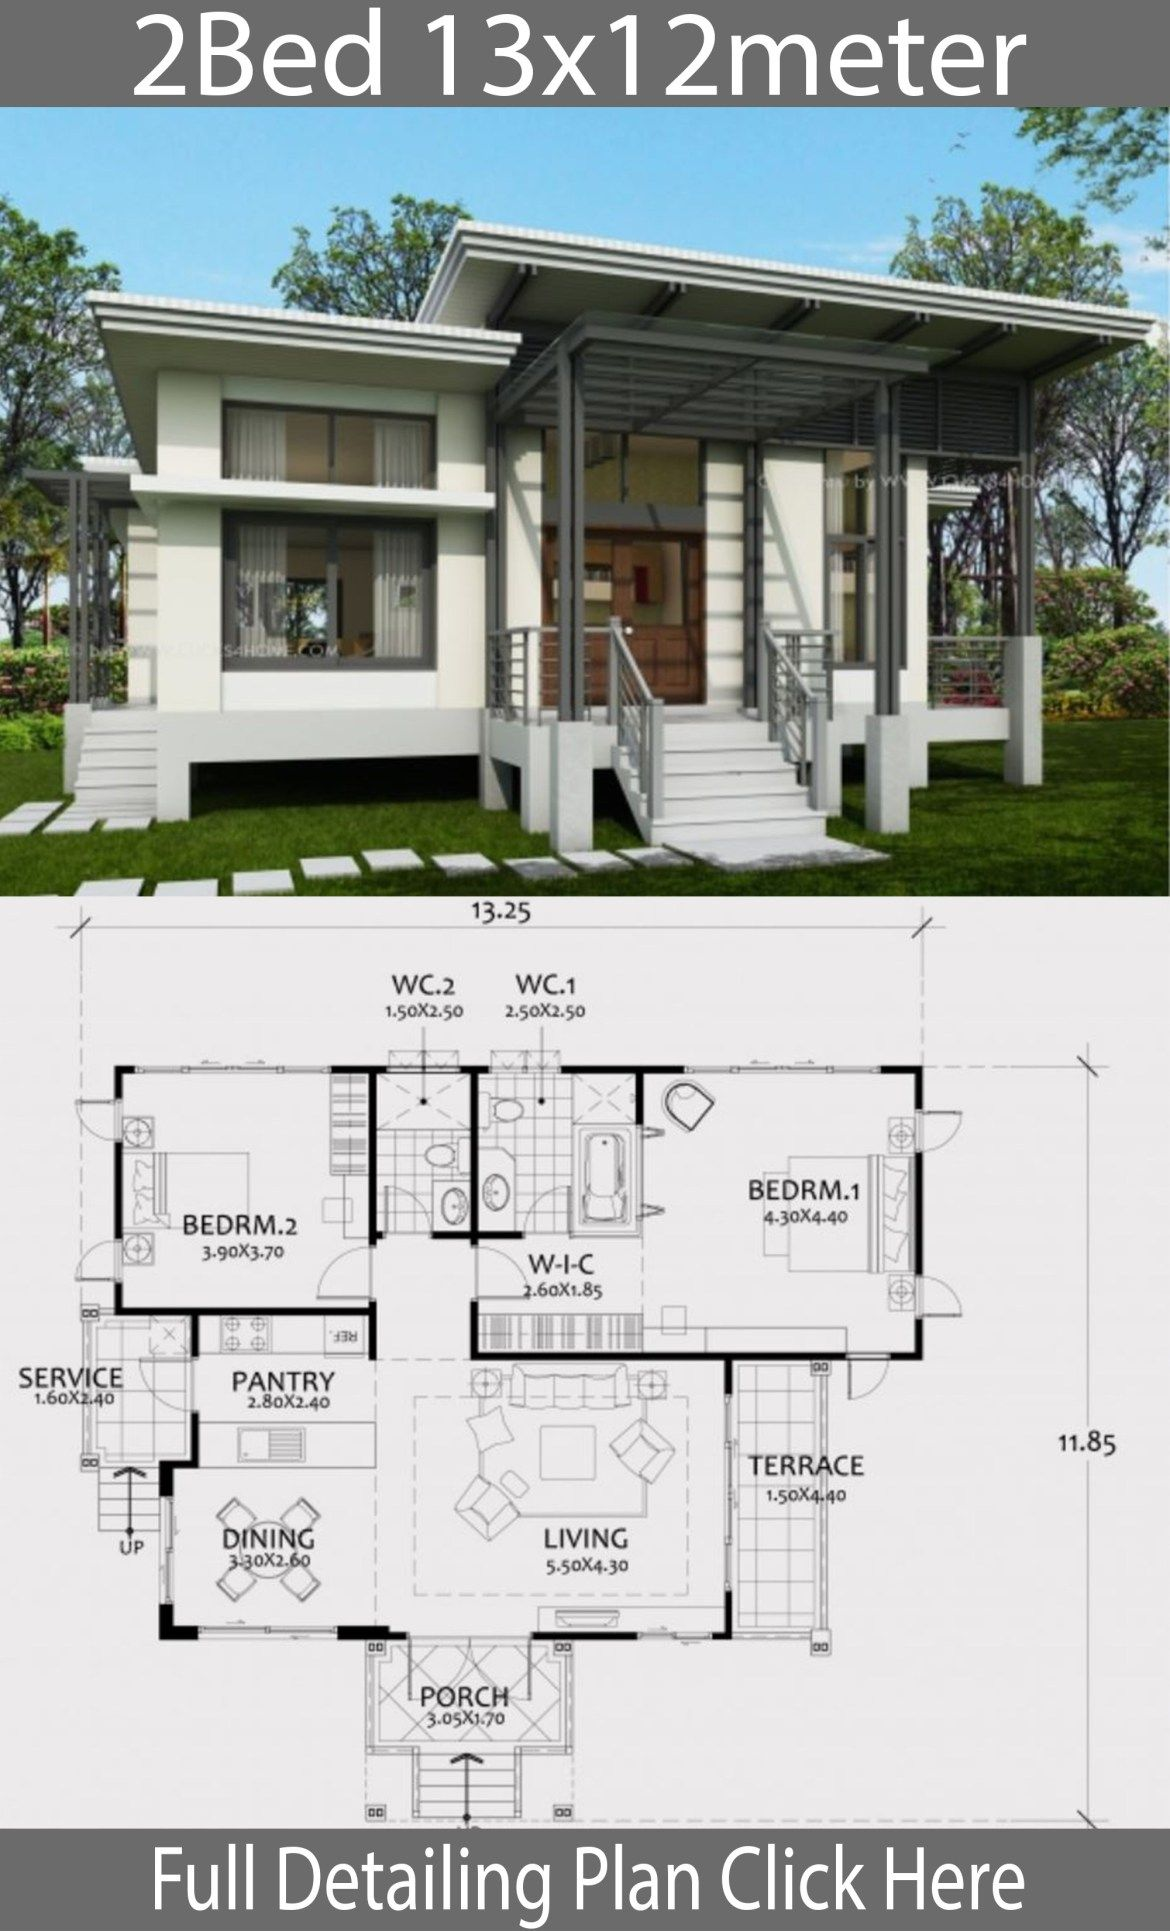 One Story House Plan 13x12m With 2 Bedrooms Home Design With Plansearch Brick Exterior House House Plans Story House